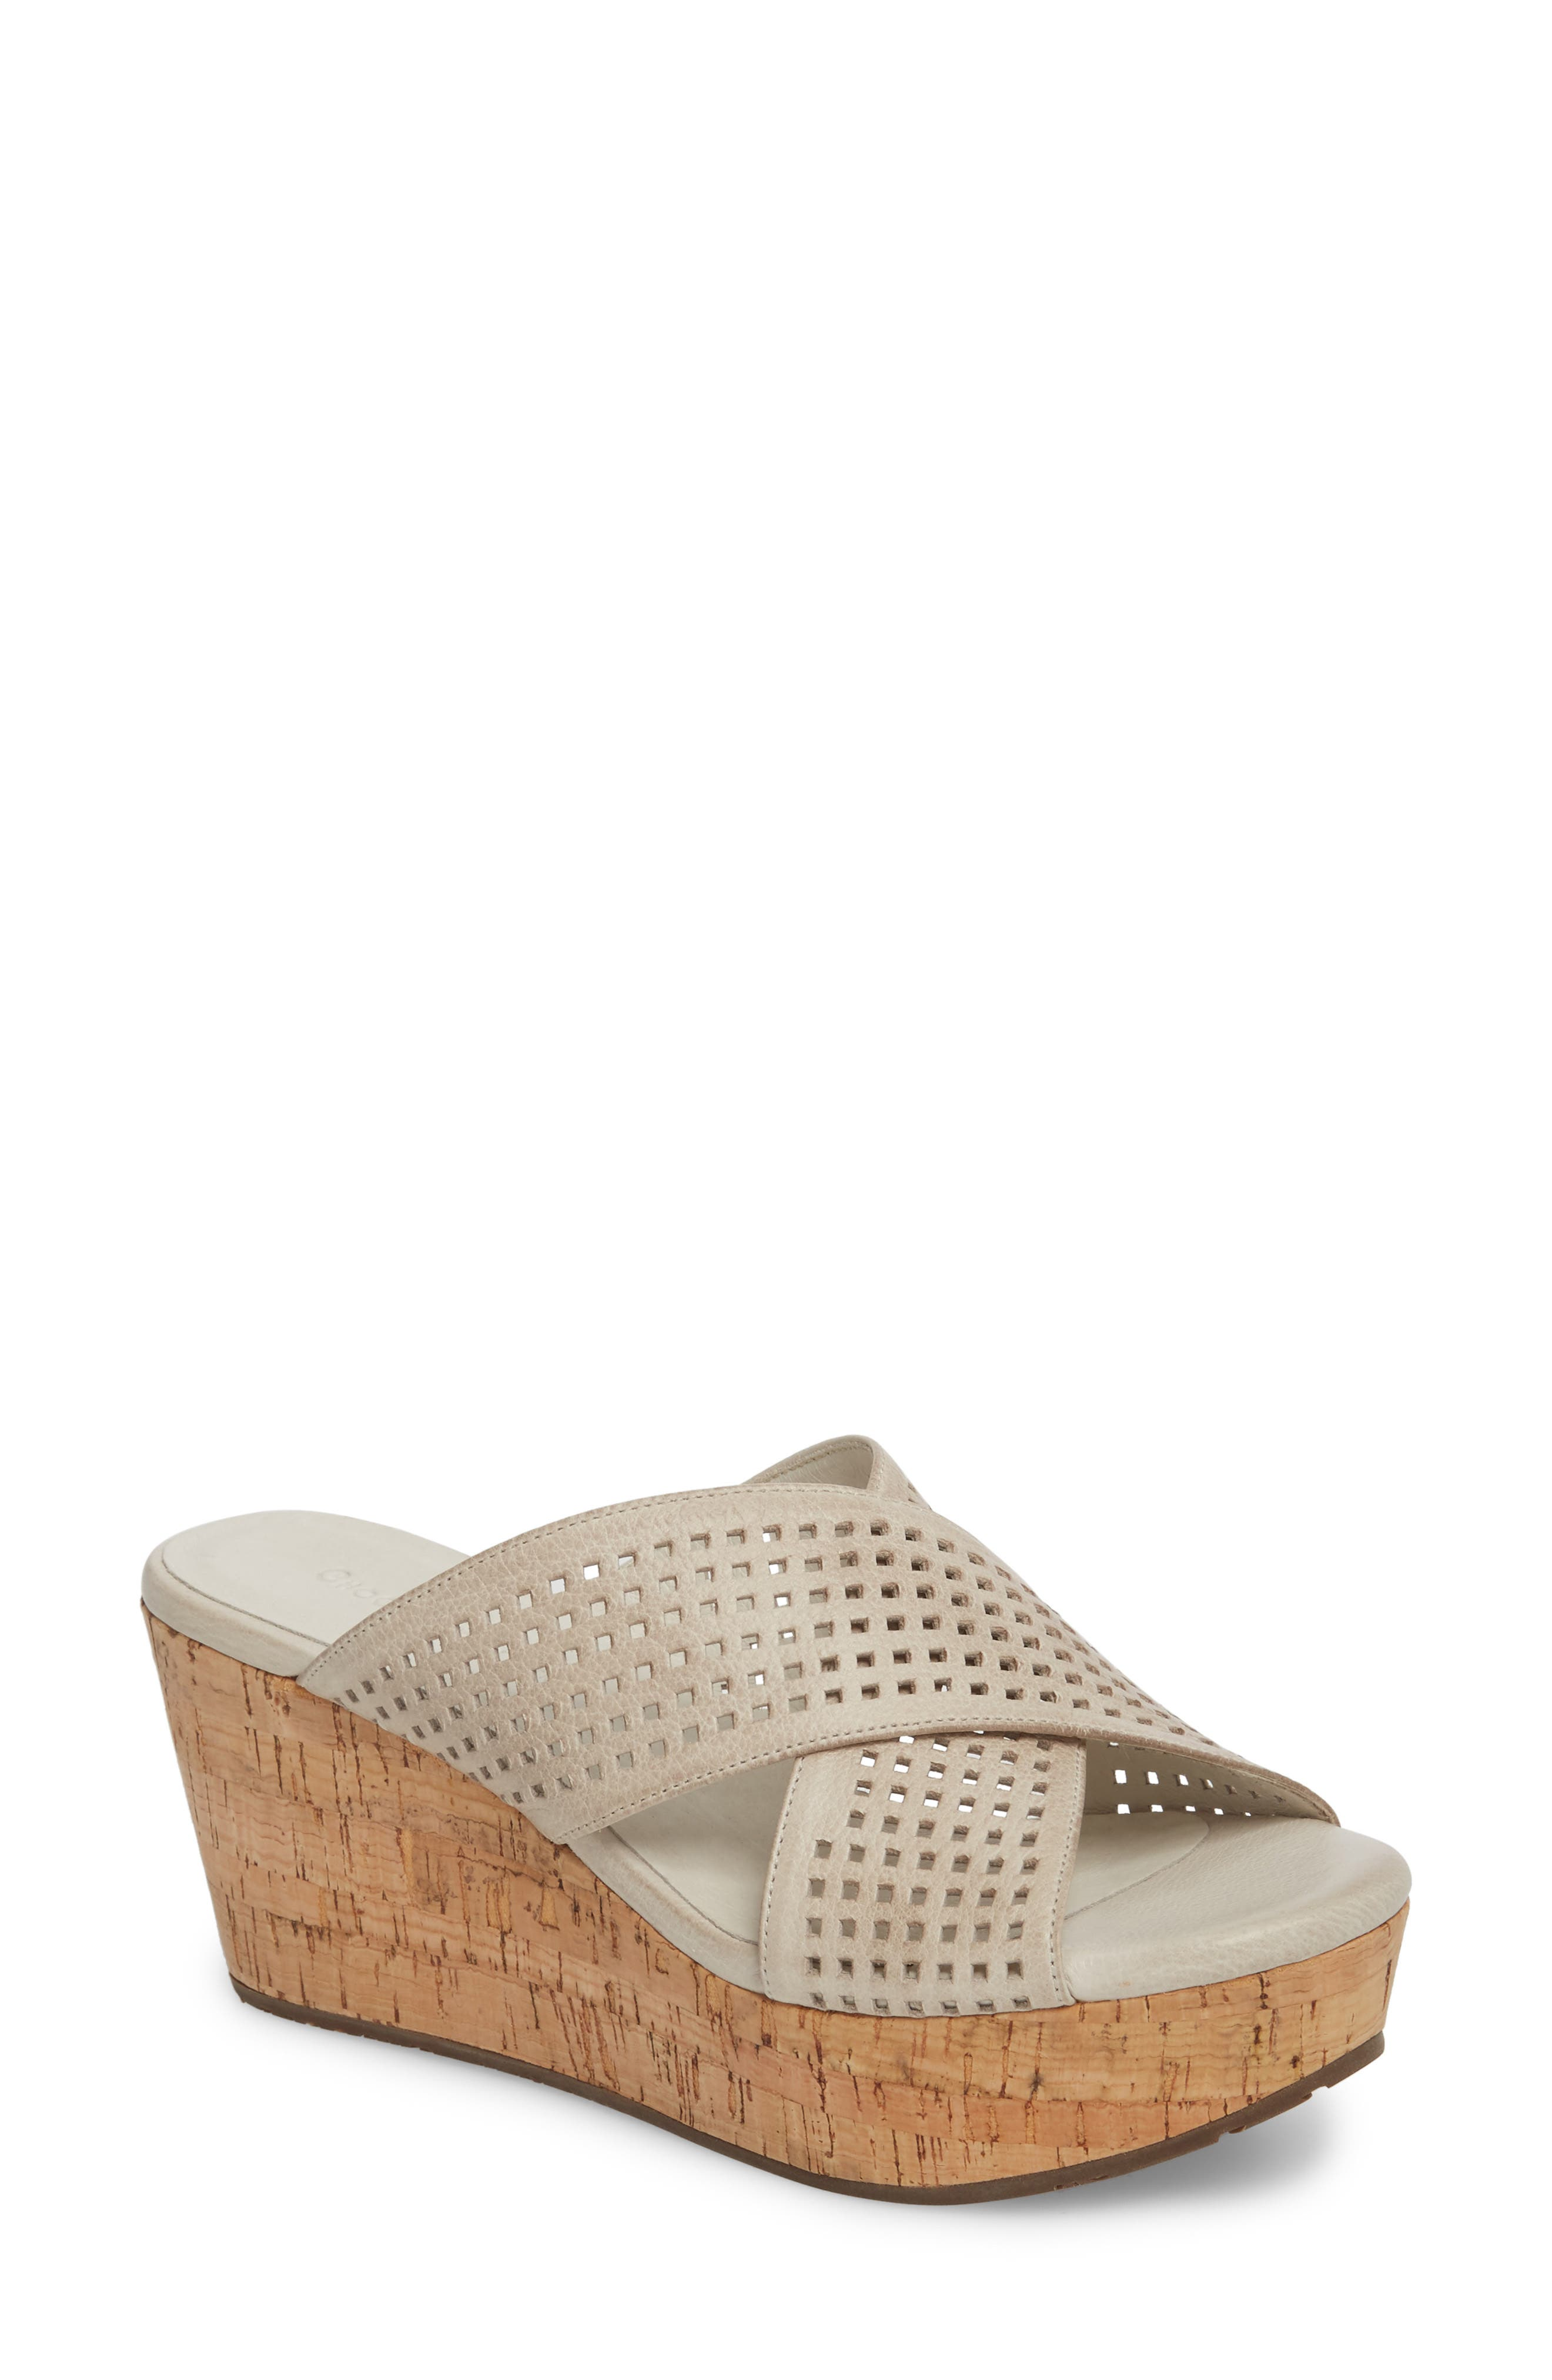 Wamblee Wedge Sandal,                         Main,                         color, Ice Leather